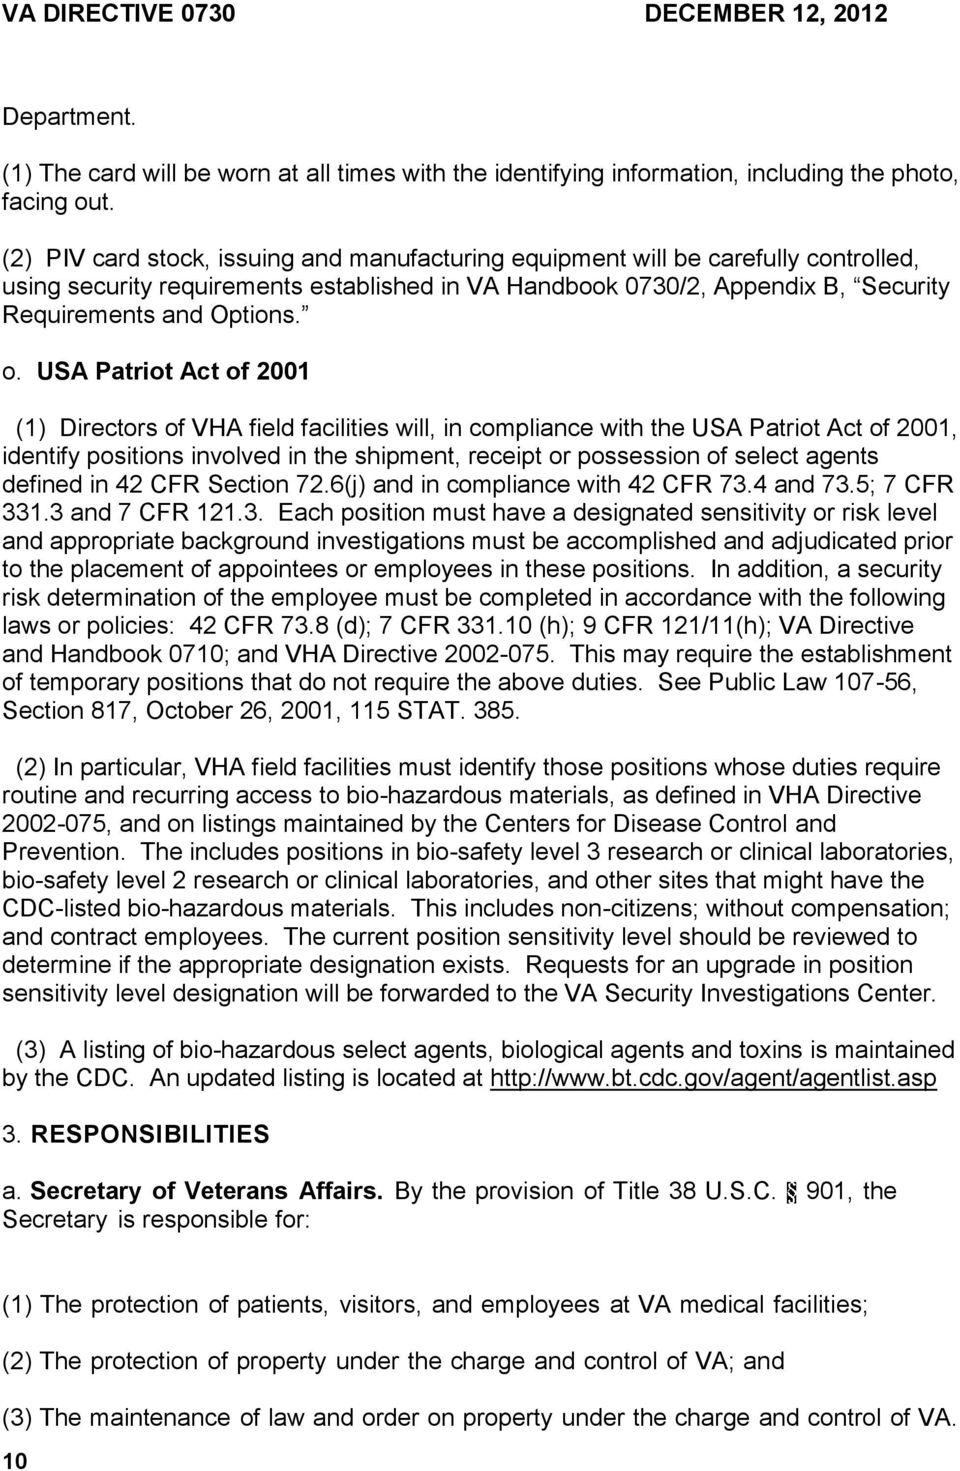 USA Patriot Act of 2001 (1) Directors of VHA field facilities will, in compliance with the USA Patriot Act of 2001, identify positions involved in the shipment, receipt or possession of select agents